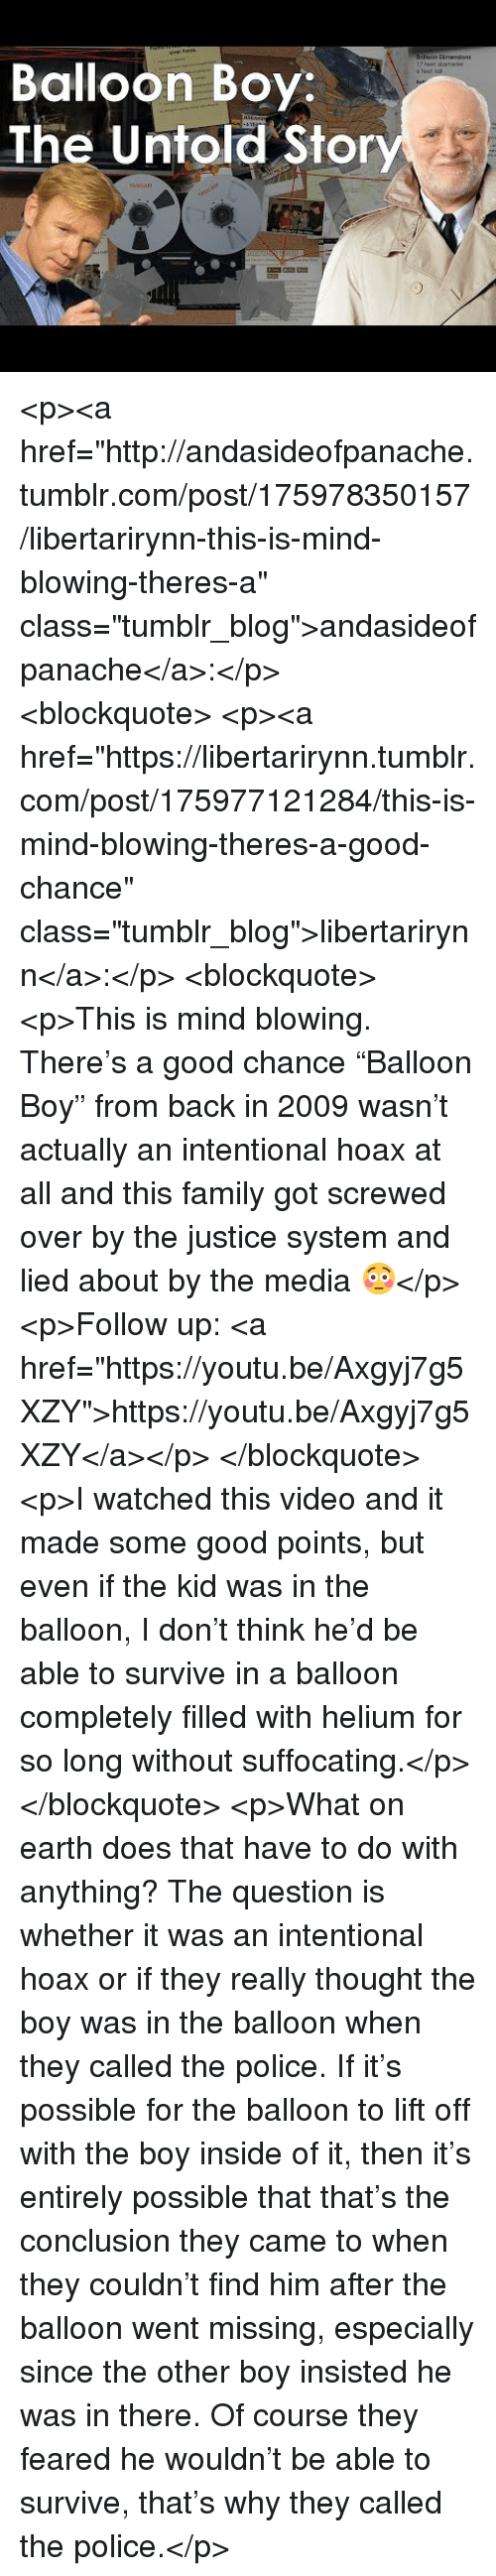 """Family, Police, and Tumblr: Balloon Boy  The Untold Stor <p><a href=""""http://andasideofpanache.tumblr.com/post/175978350157/libertarirynn-this-is-mind-blowing-theres-a"""" class=""""tumblr_blog"""">andasideofpanache</a>:</p> <blockquote> <p><a href=""""https://libertarirynn.tumblr.com/post/175977121284/this-is-mind-blowing-theres-a-good-chance"""" class=""""tumblr_blog"""">libertarirynn</a>:</p> <blockquote> <p>This is mind blowing. There's a good chance """"Balloon Boy"""" from back in 2009 wasn't actually an intentional hoax at all and this family got screwed over by the justice system and lied about by the media 😳</p>  <p>Follow up: <a href=""""https://youtu.be/Axgyj7g5XZY"""">https://youtu.be/Axgyj7g5XZY</a></p> </blockquote> <p>I watched this video and it made some good points, but even if the kid was in the balloon, I don't think he'd be able to survive in a balloon completely filled with helium for so long without suffocating.</p> </blockquote> <p>What on earth does that have to do with anything? The question is whether it was an intentional hoax or if they really thought the boy was in the balloon when they called the police. If it's possible for the balloon to lift off with the boy inside of it, then it's entirely possible that that's the conclusion they came to when they couldn't find him after the balloon went missing, especially since the other boy insisted he was in there. Of course they feared he wouldn't be able to survive, that's why they called the police.</p>"""